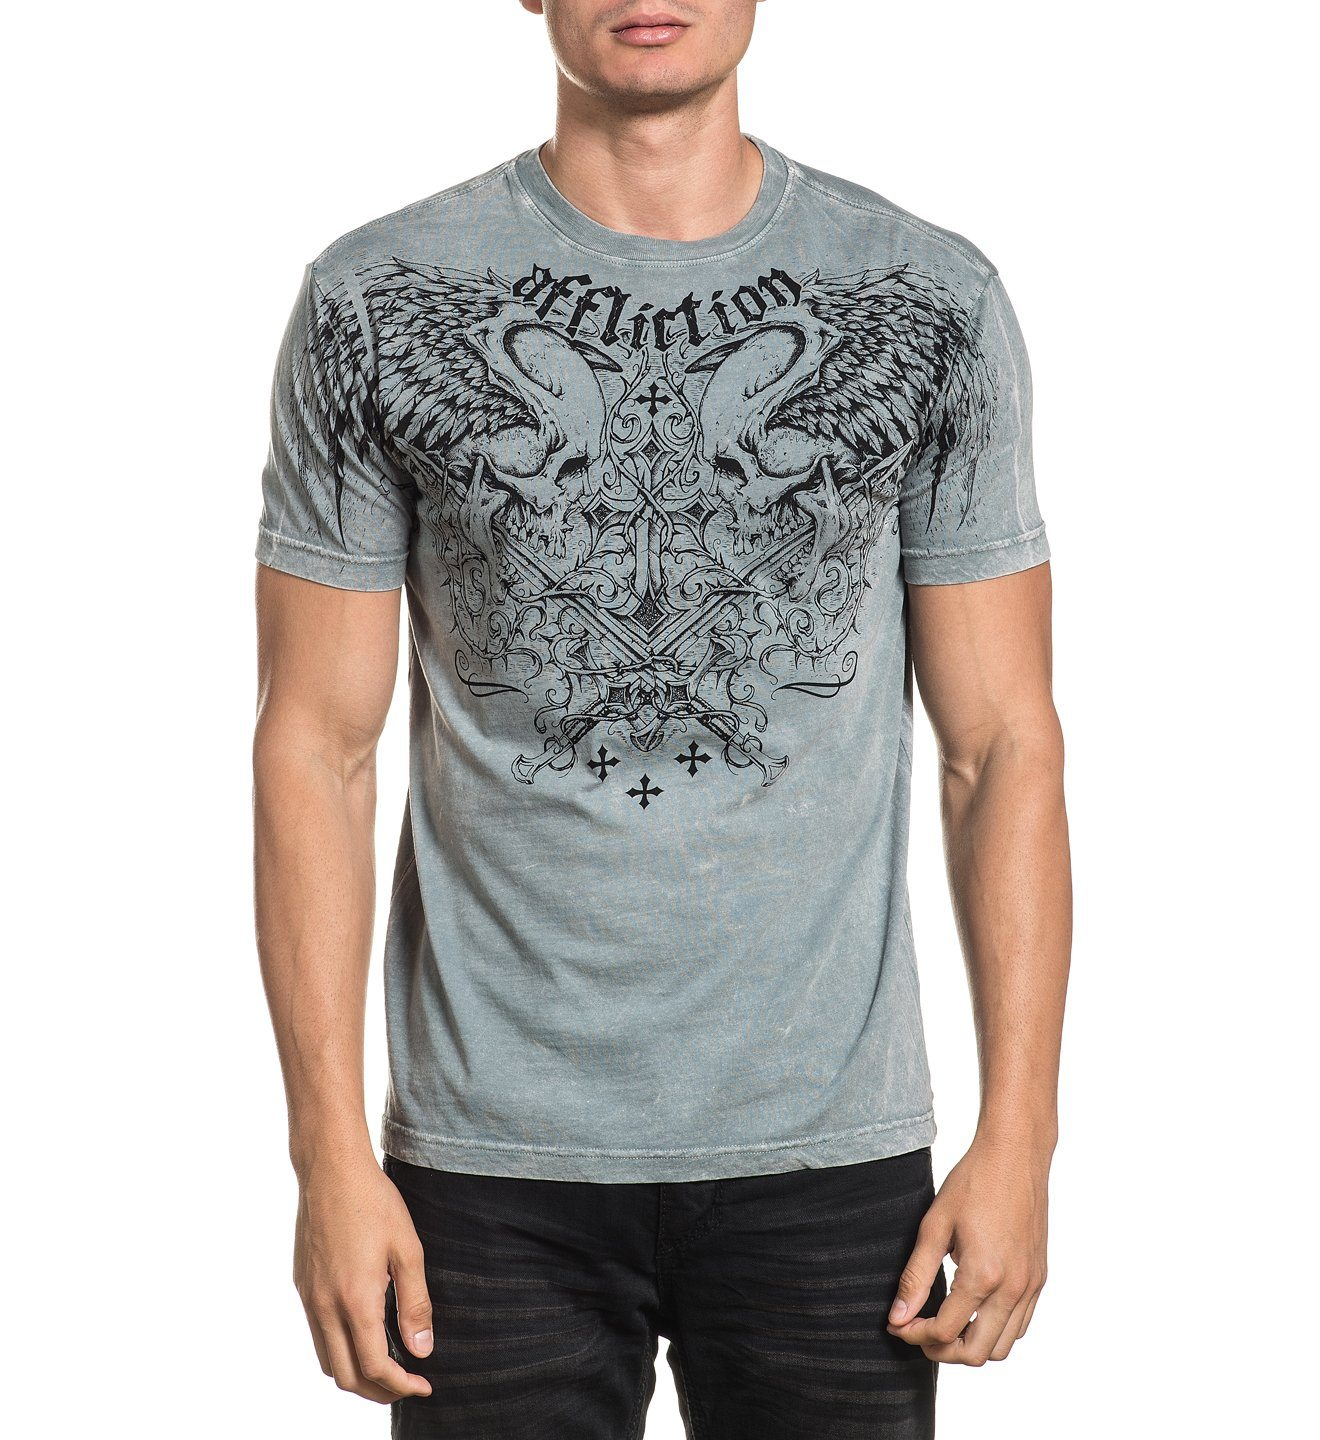 Sword Eater - Mens Short Sleeve Tees - Affliction Clothing